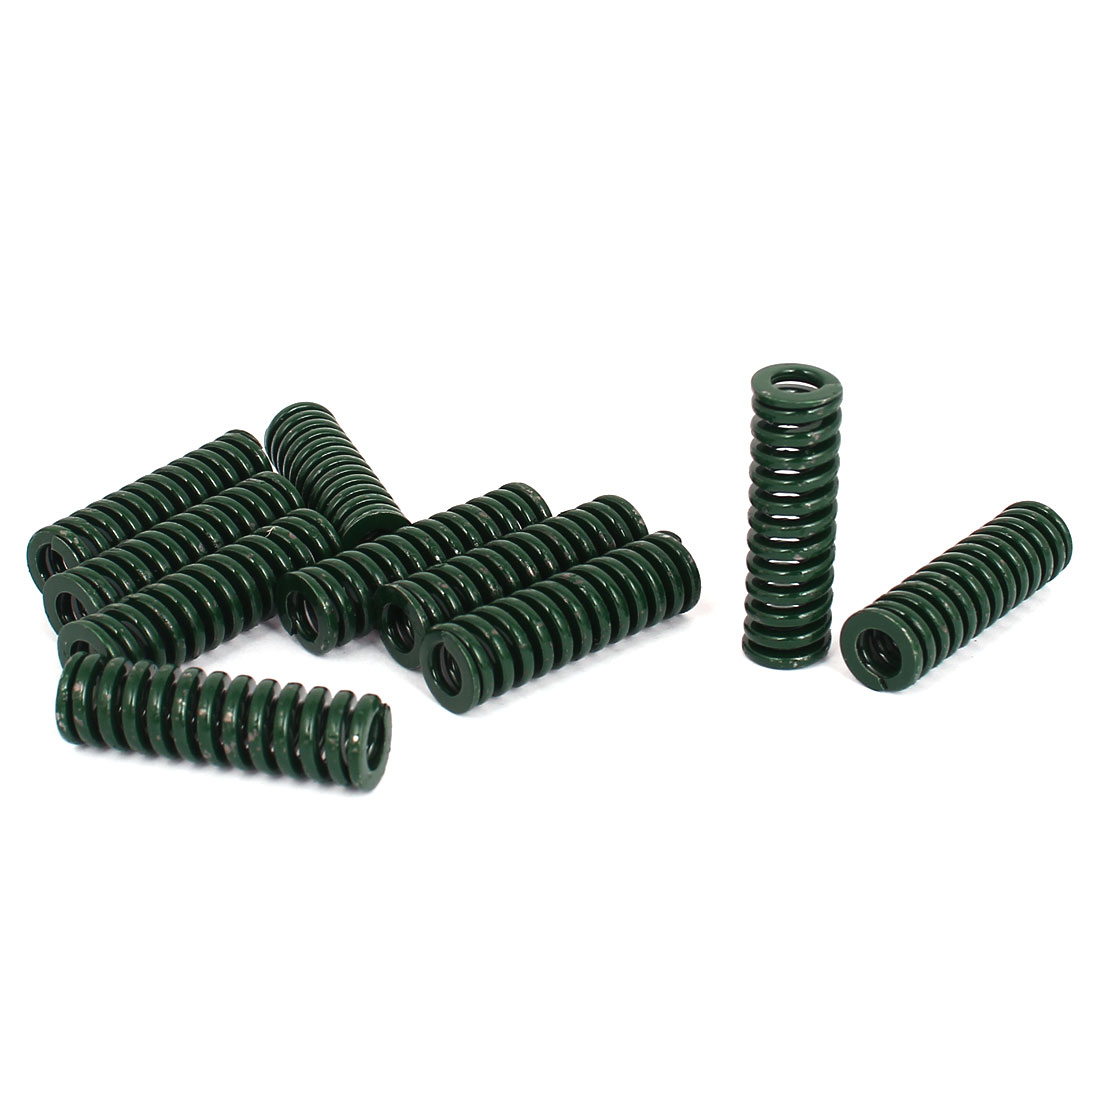 12mm OD 40mm Long Heavy Load Stamping Compression Mold Die Spring Green 10pcs